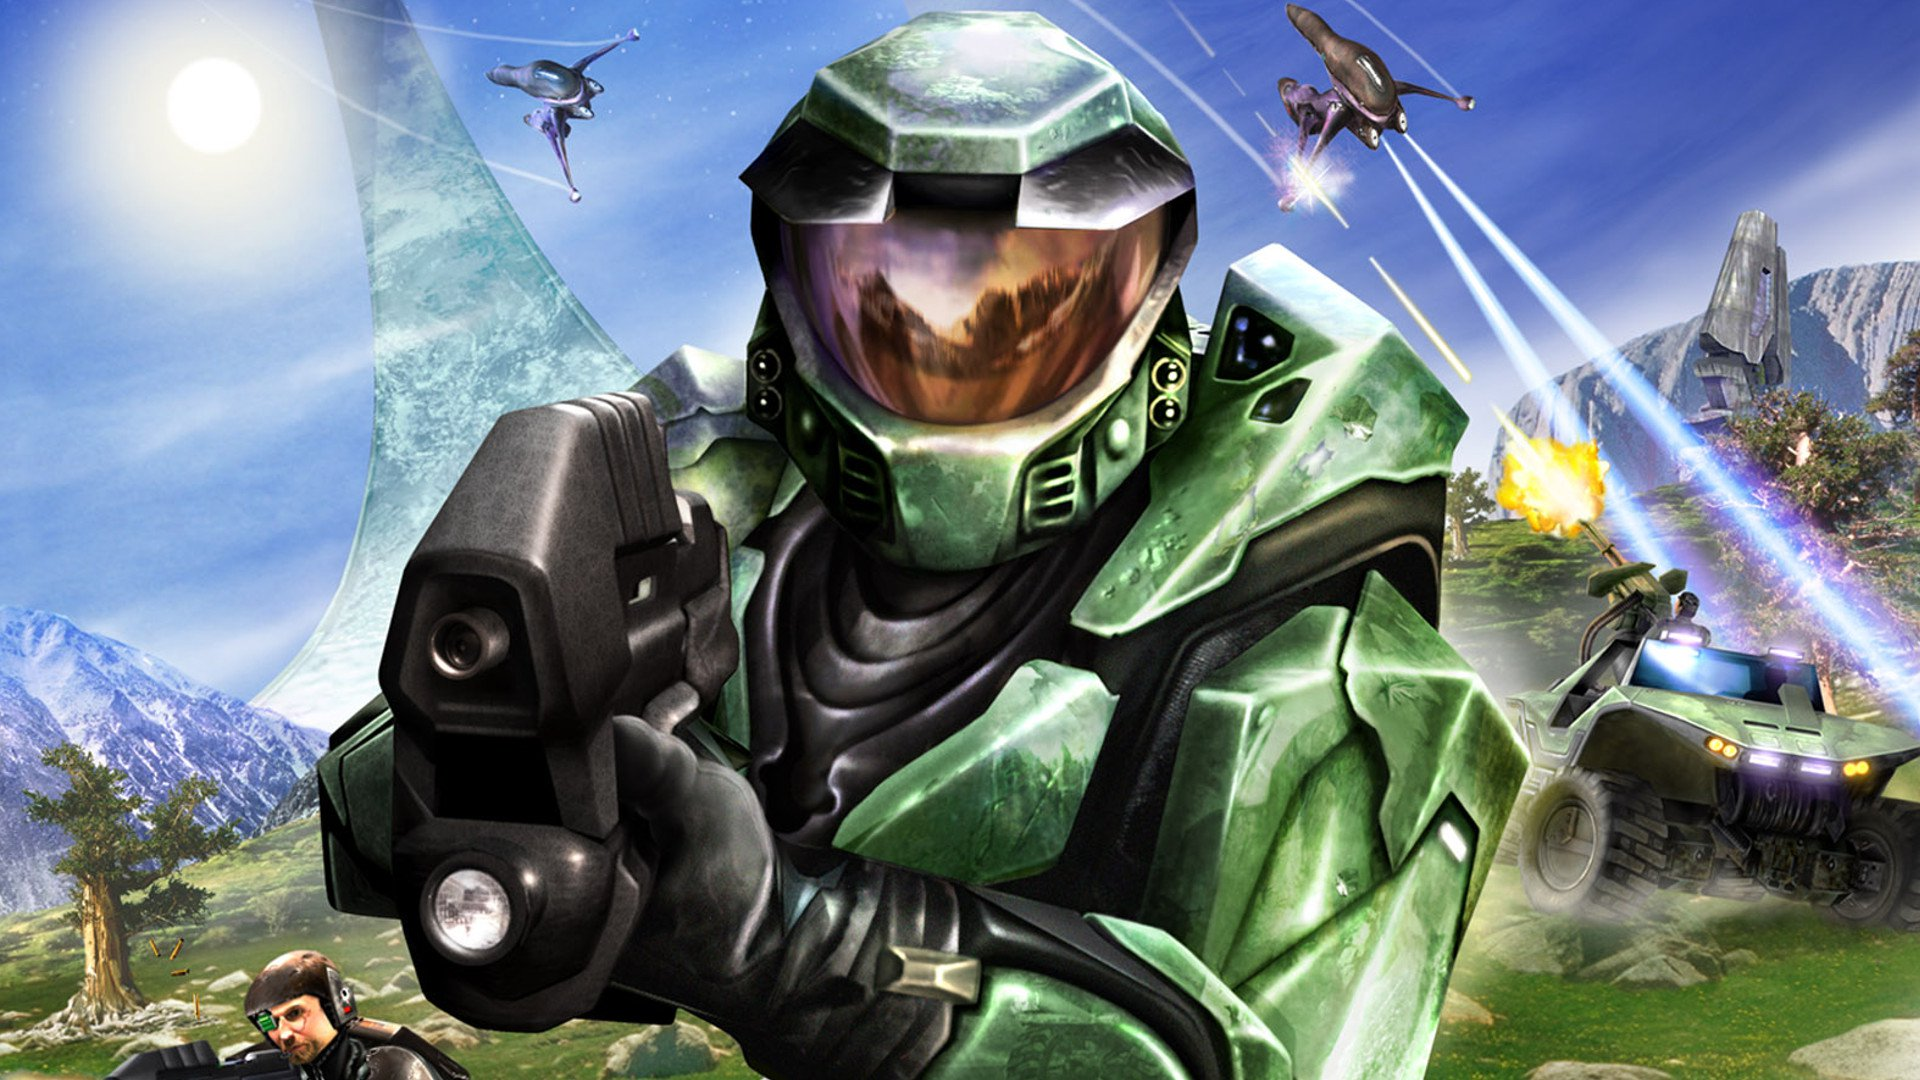 14-year-old fanmade Halo PC maps could get a strange second life on